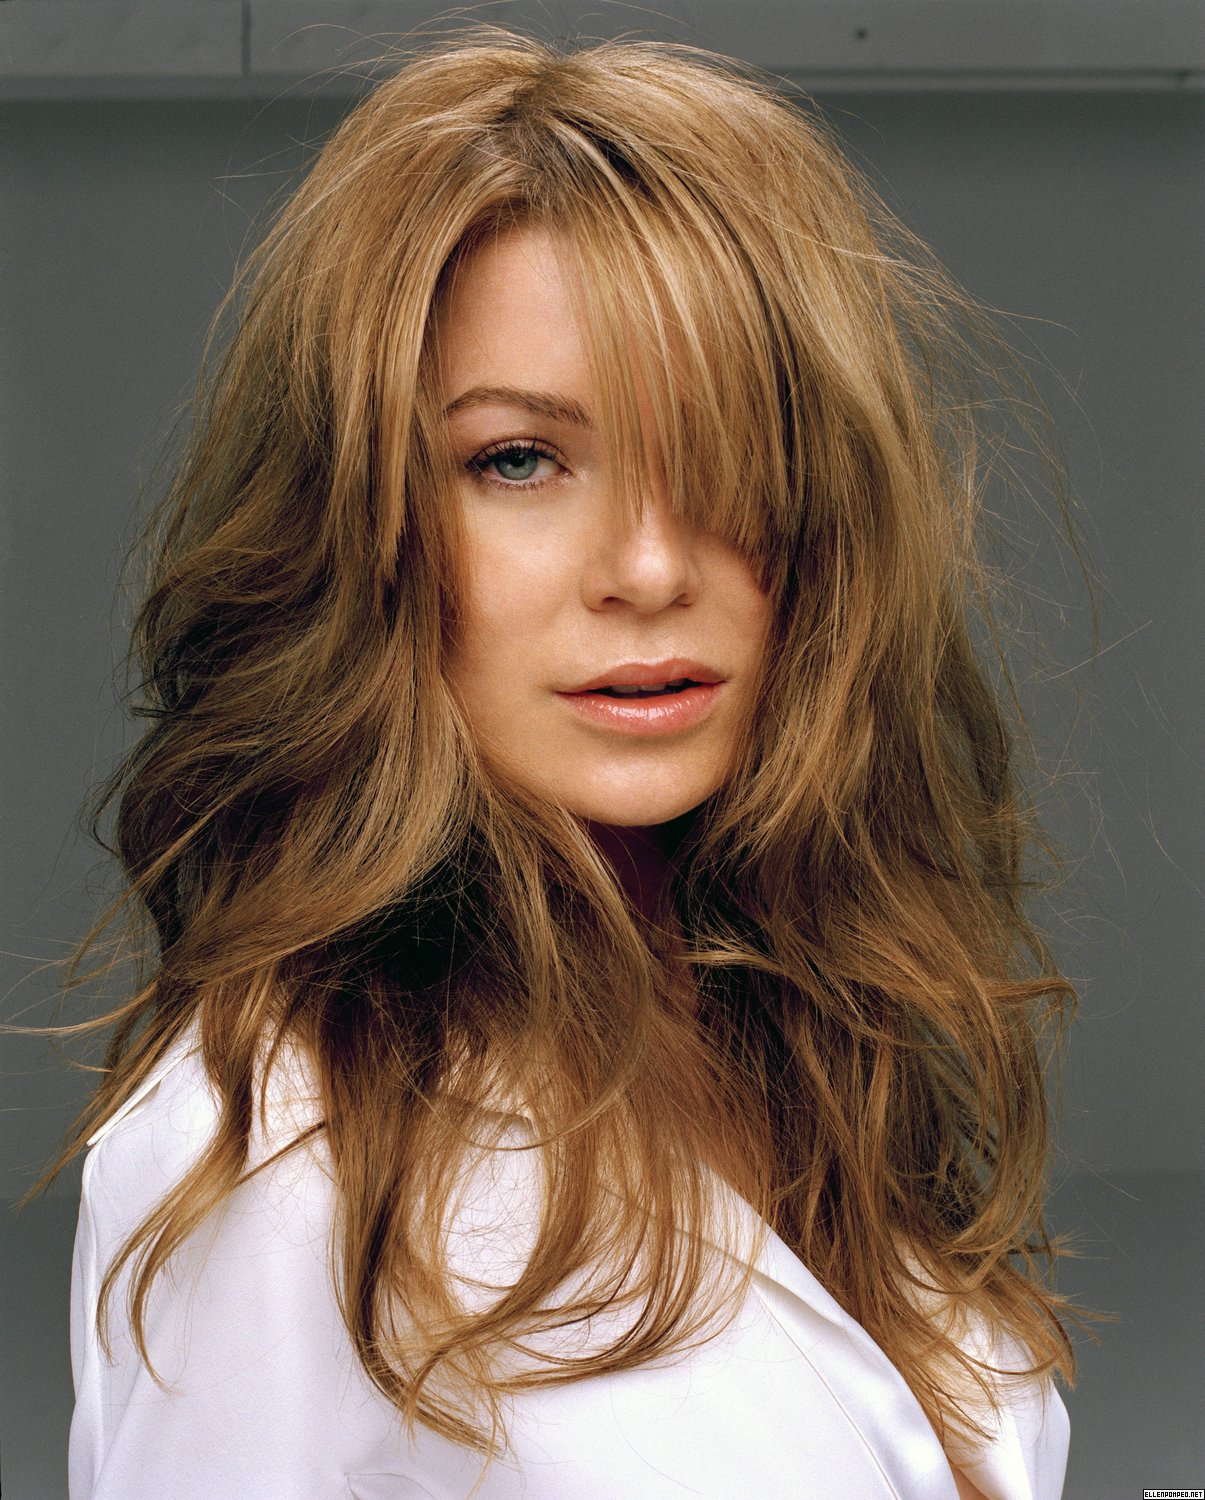 Ellen Pompeo - Ellen Pompeo Photo (100556) - Fanpop